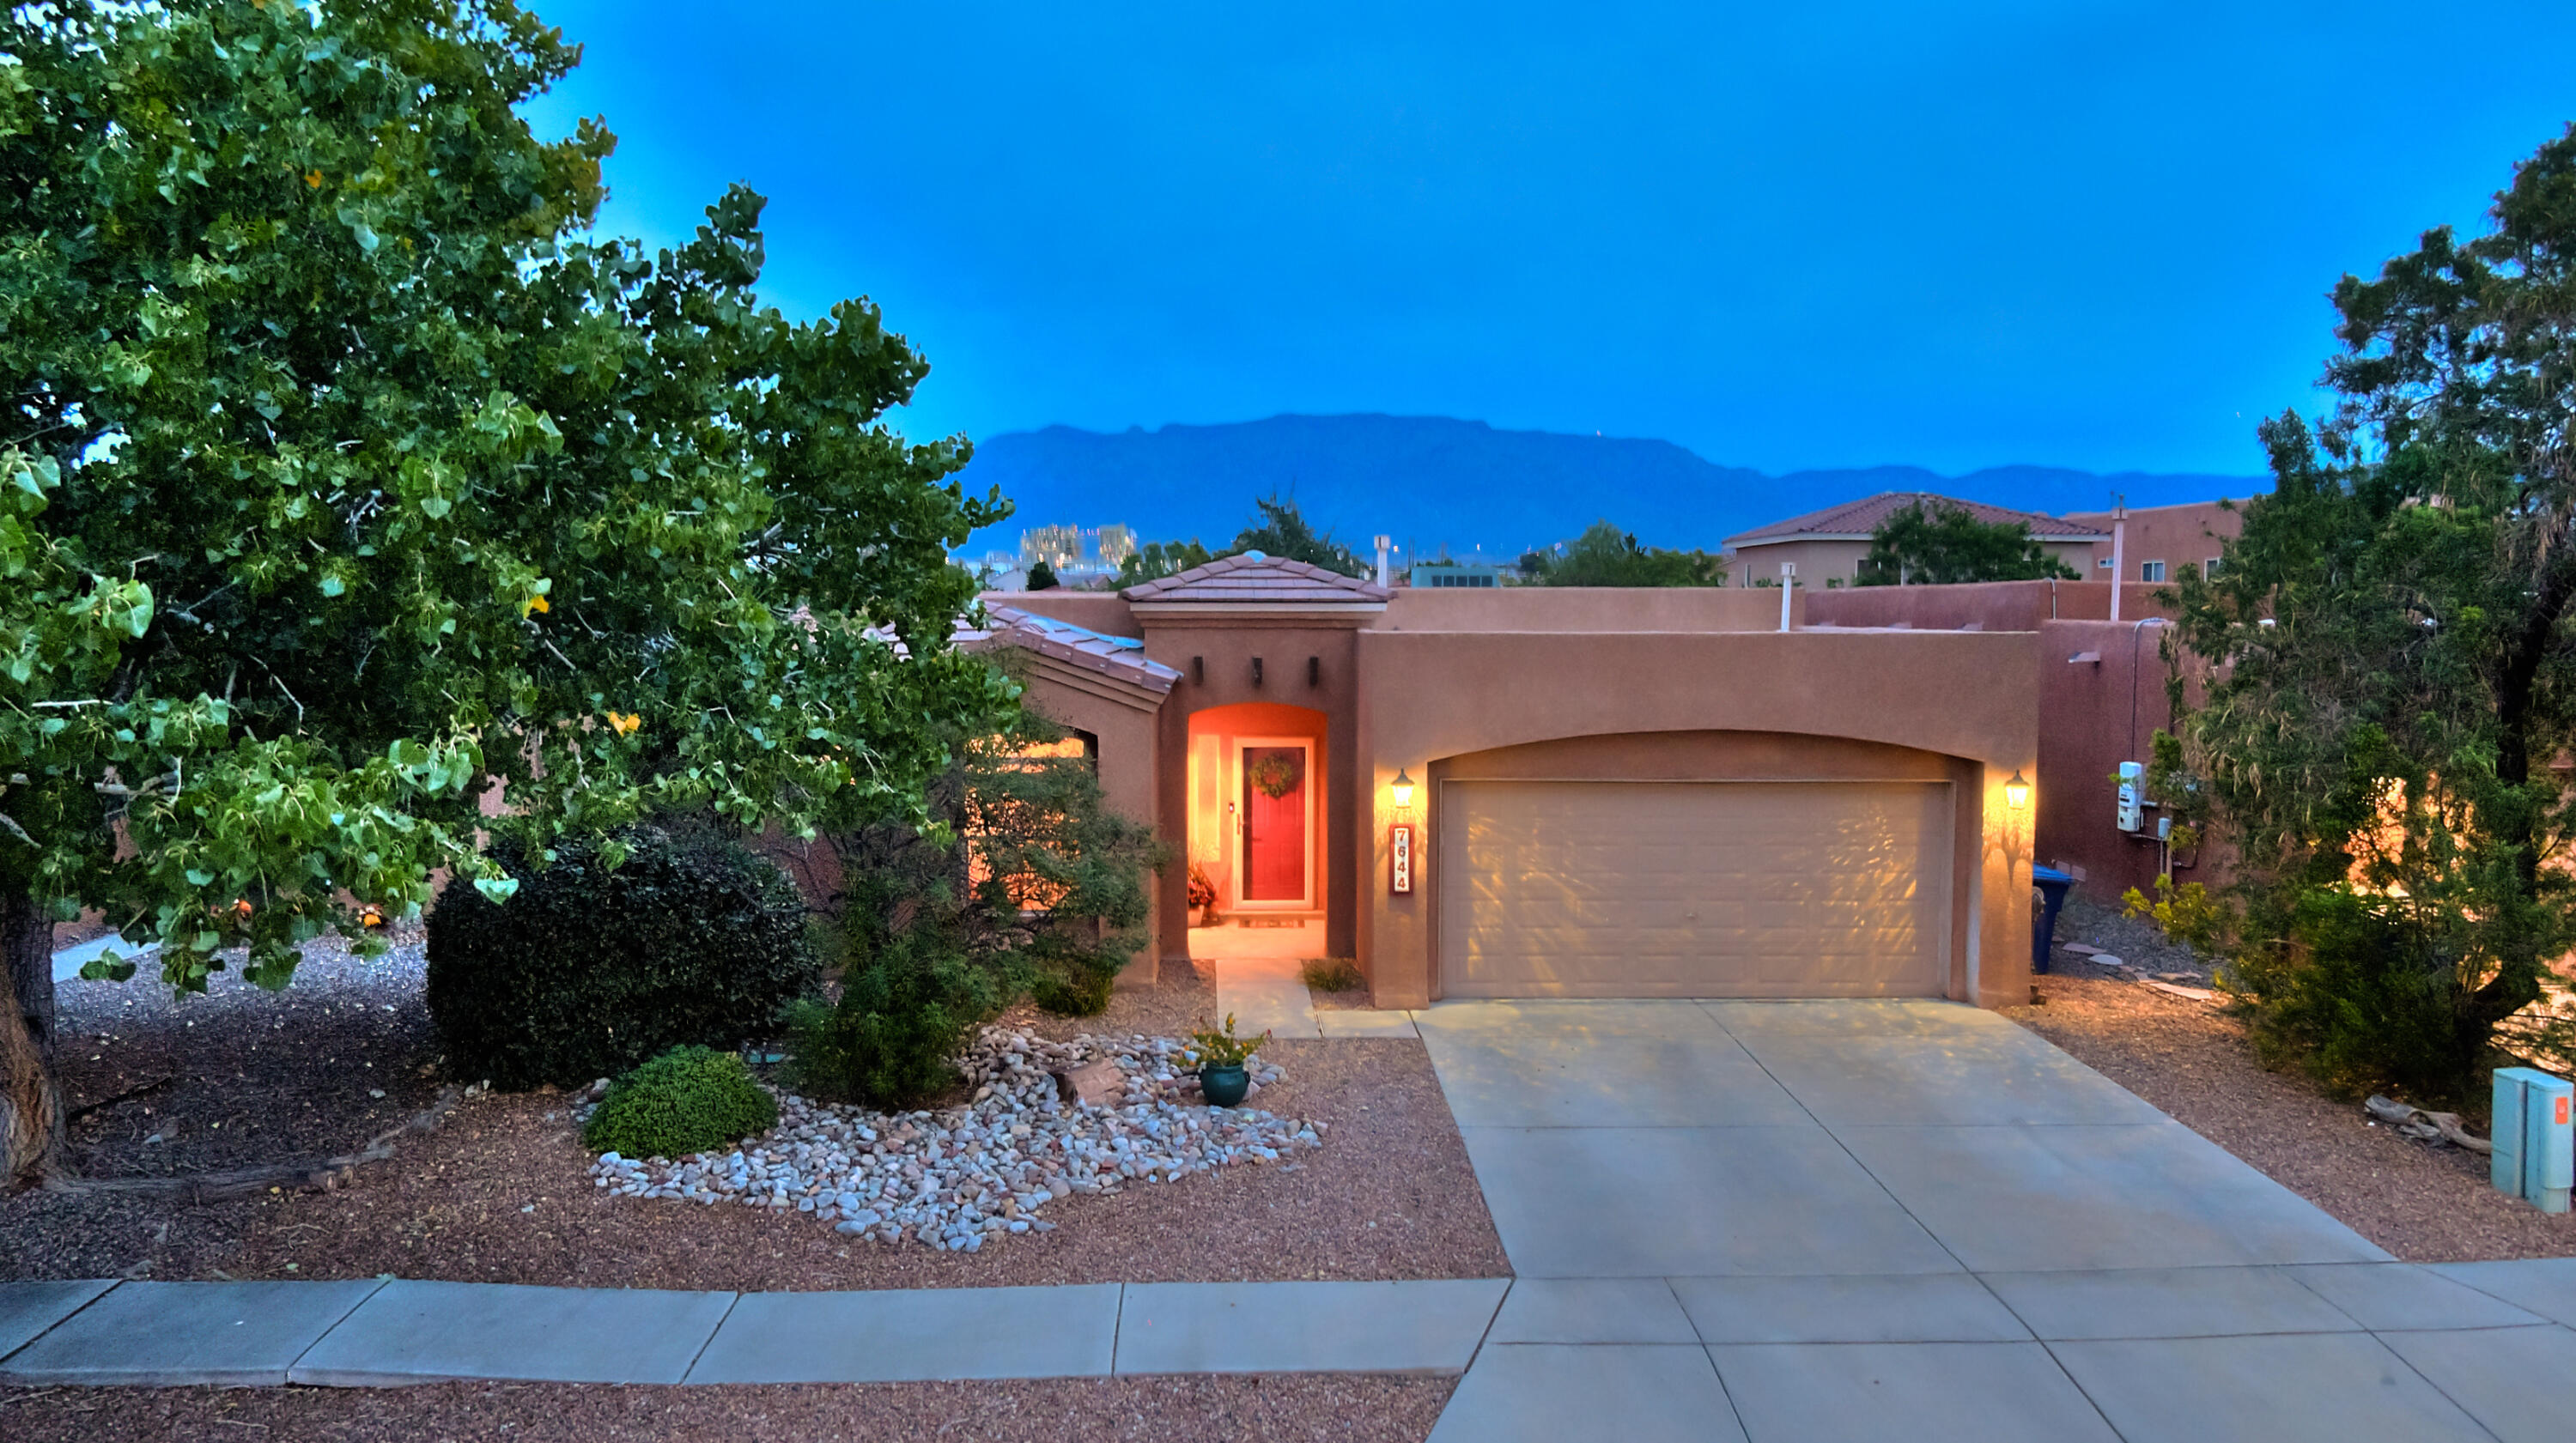 You won't want to miss this beautiful and tastefully updated, single level, 4 bedroom, 2 bathroom home in Vista Del Norte. Enjoy the spacious, open, and versatile floor plan with a separate owners suite. The stunning chef's kitchen offers elegant granite counters, custom tile backsplash, gas range and vent hood. A new roof (8/2021 - flat portion only), upgraded tile flooring in the bedrooms, and a recently updated master bathroom including custom tile in the shower are just a few of the highlights of this home. The fully landscaped backyard complete with a pergola is the perfect place for entertaining or enjoying dinner alfresco.